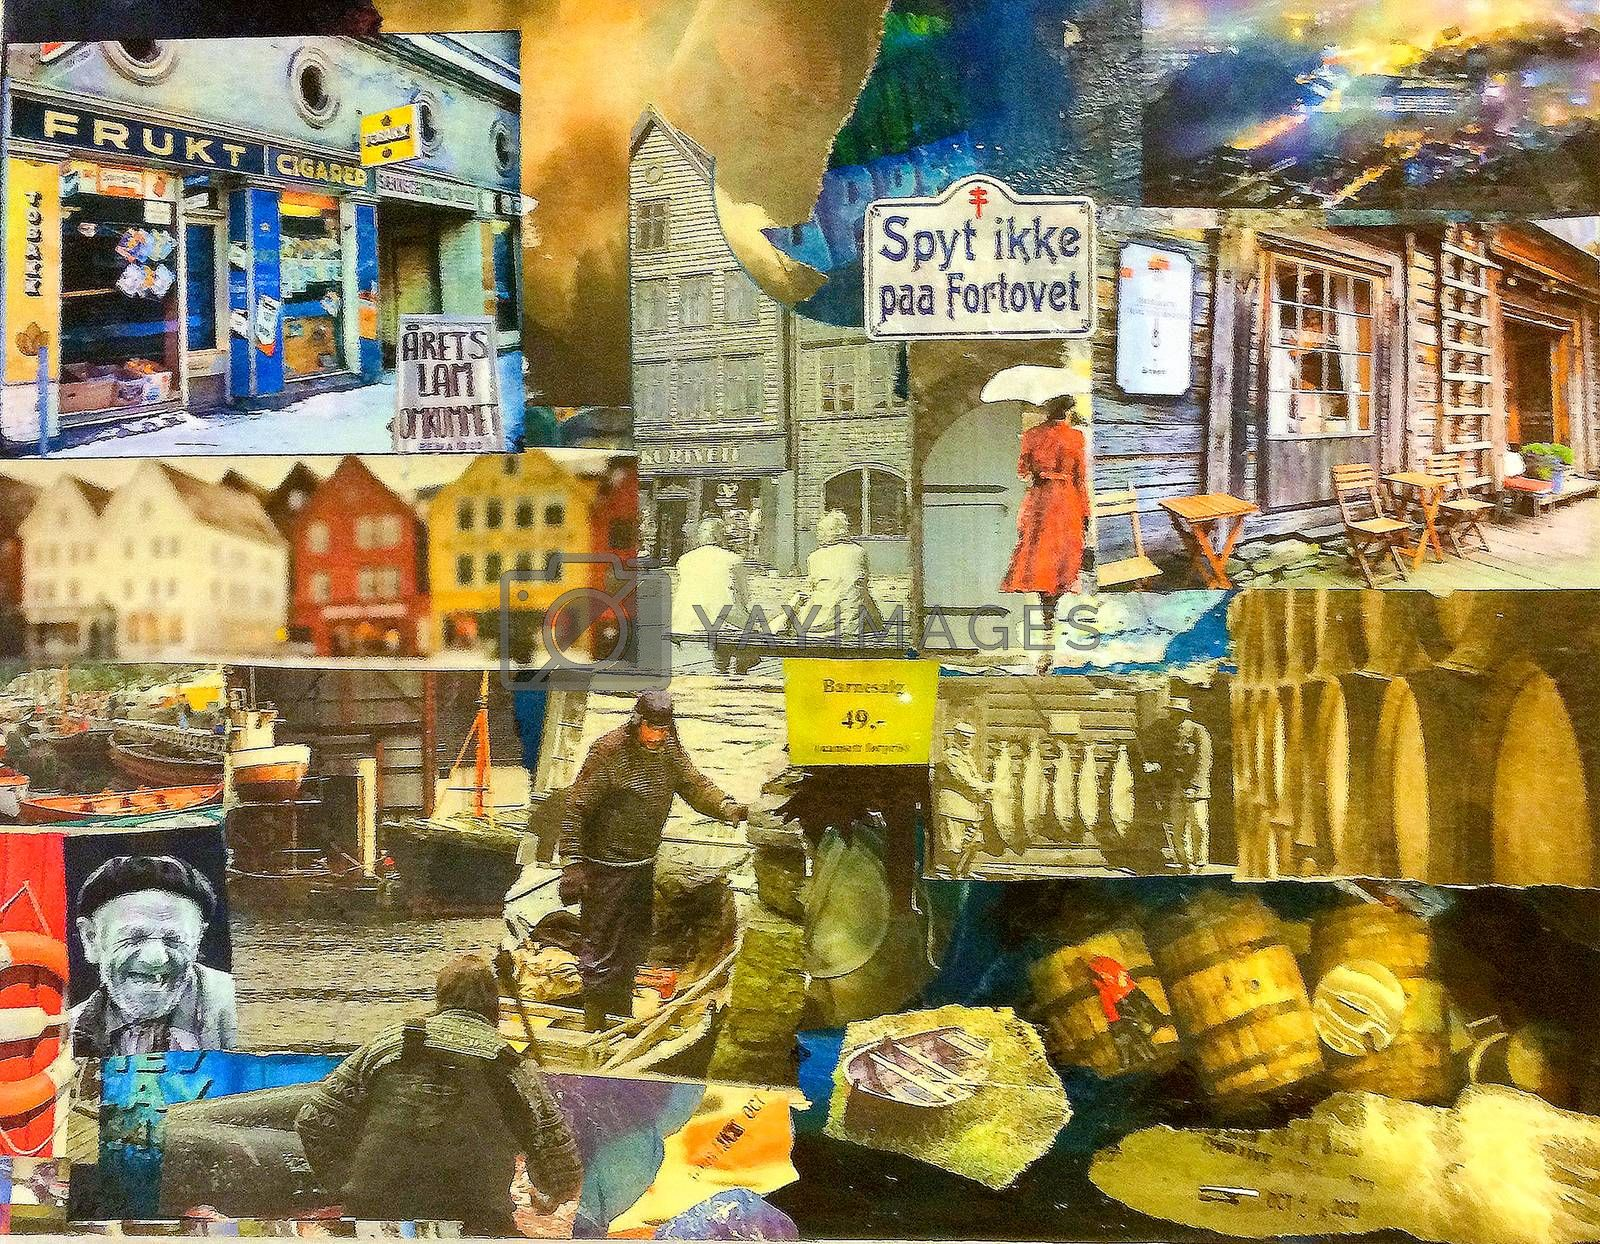 Mixed media art on canvas painted with acryl from Bergen in 1945. Picture from the harbor with fishermen, boats, special characters, Bergen Bryggen, funny signs with misspellings in Norwegian.